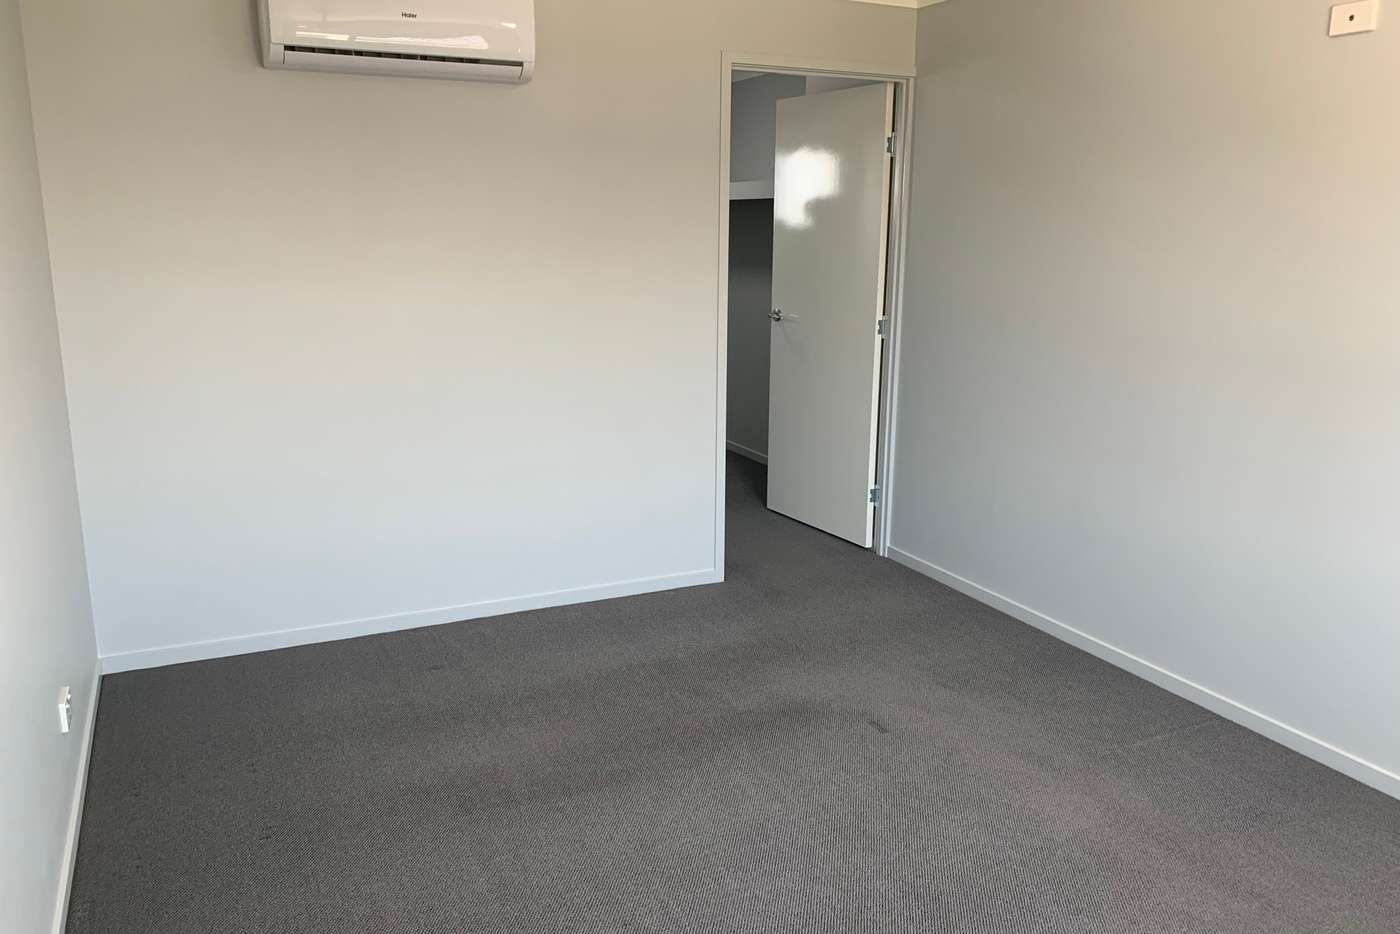 Seventh view of Homely townhouse listing, 2 Kerr Rd West, Kallangur QLD 4503